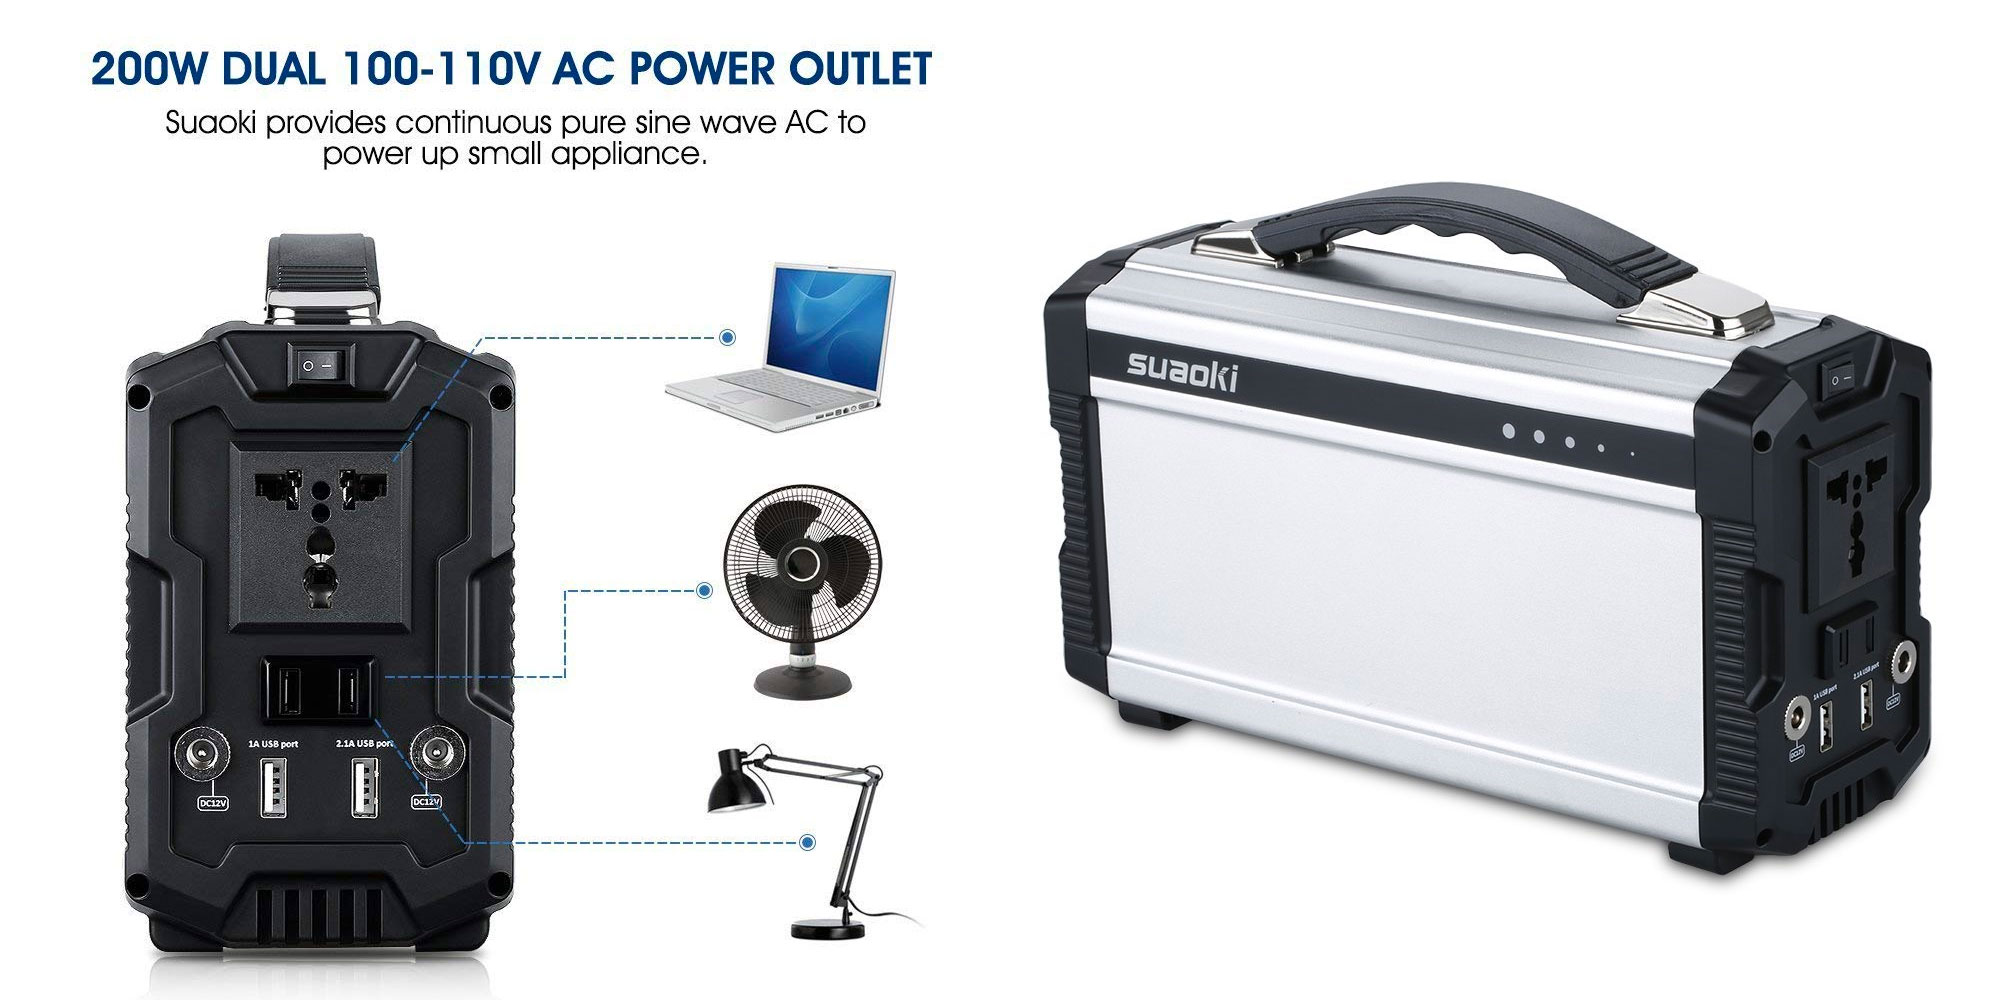 This 222Wh portable power station from Suaoki features USB, AC, more at $140 (Reg. $190)